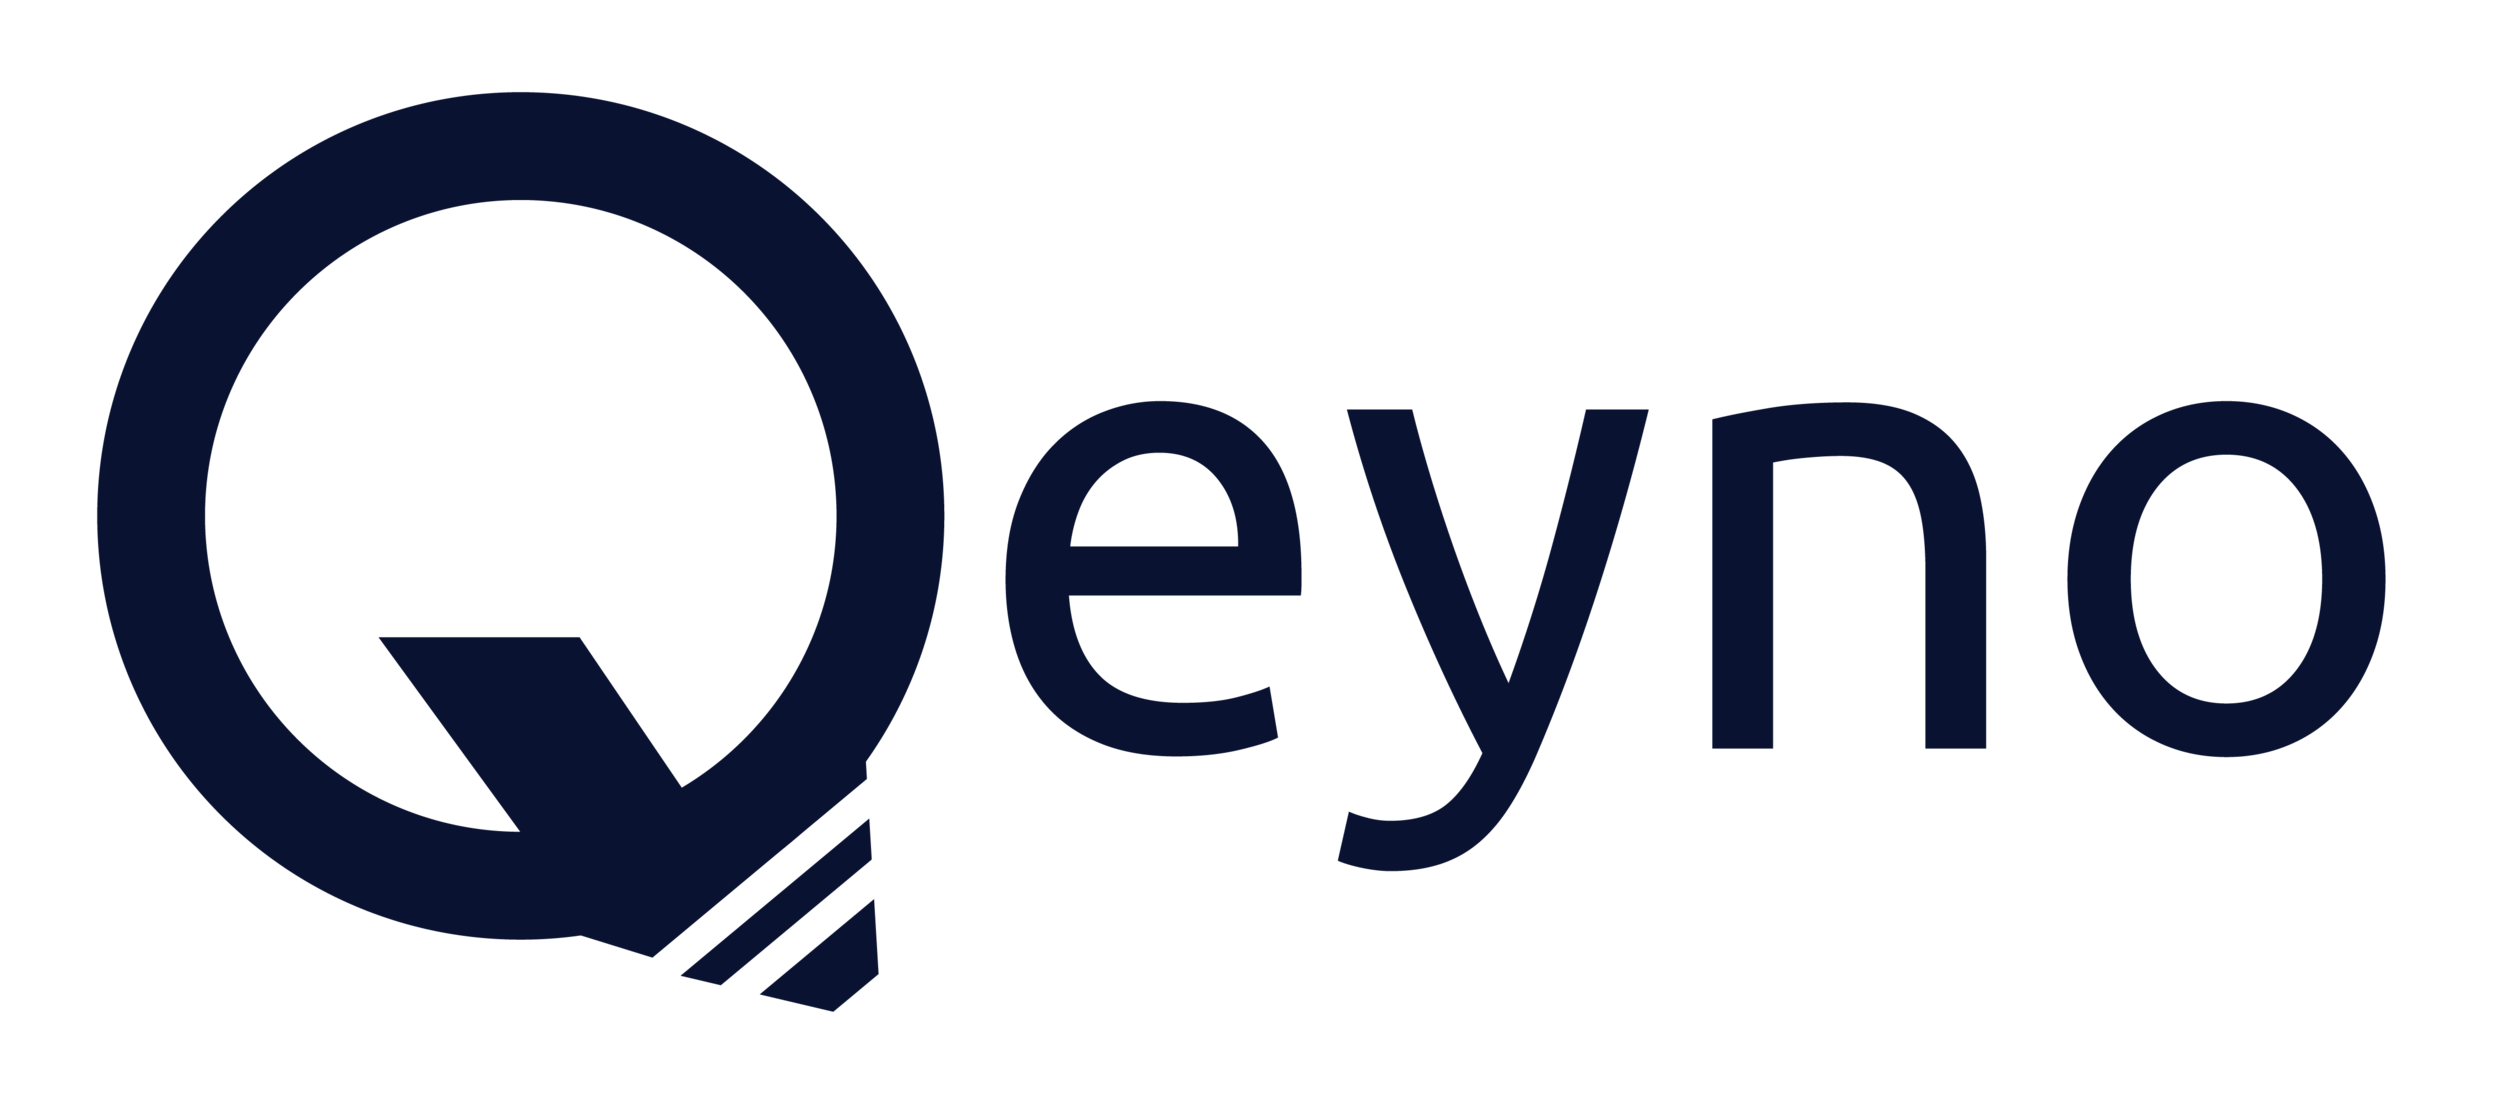 qeyno_name_logo_native_2017-01.png